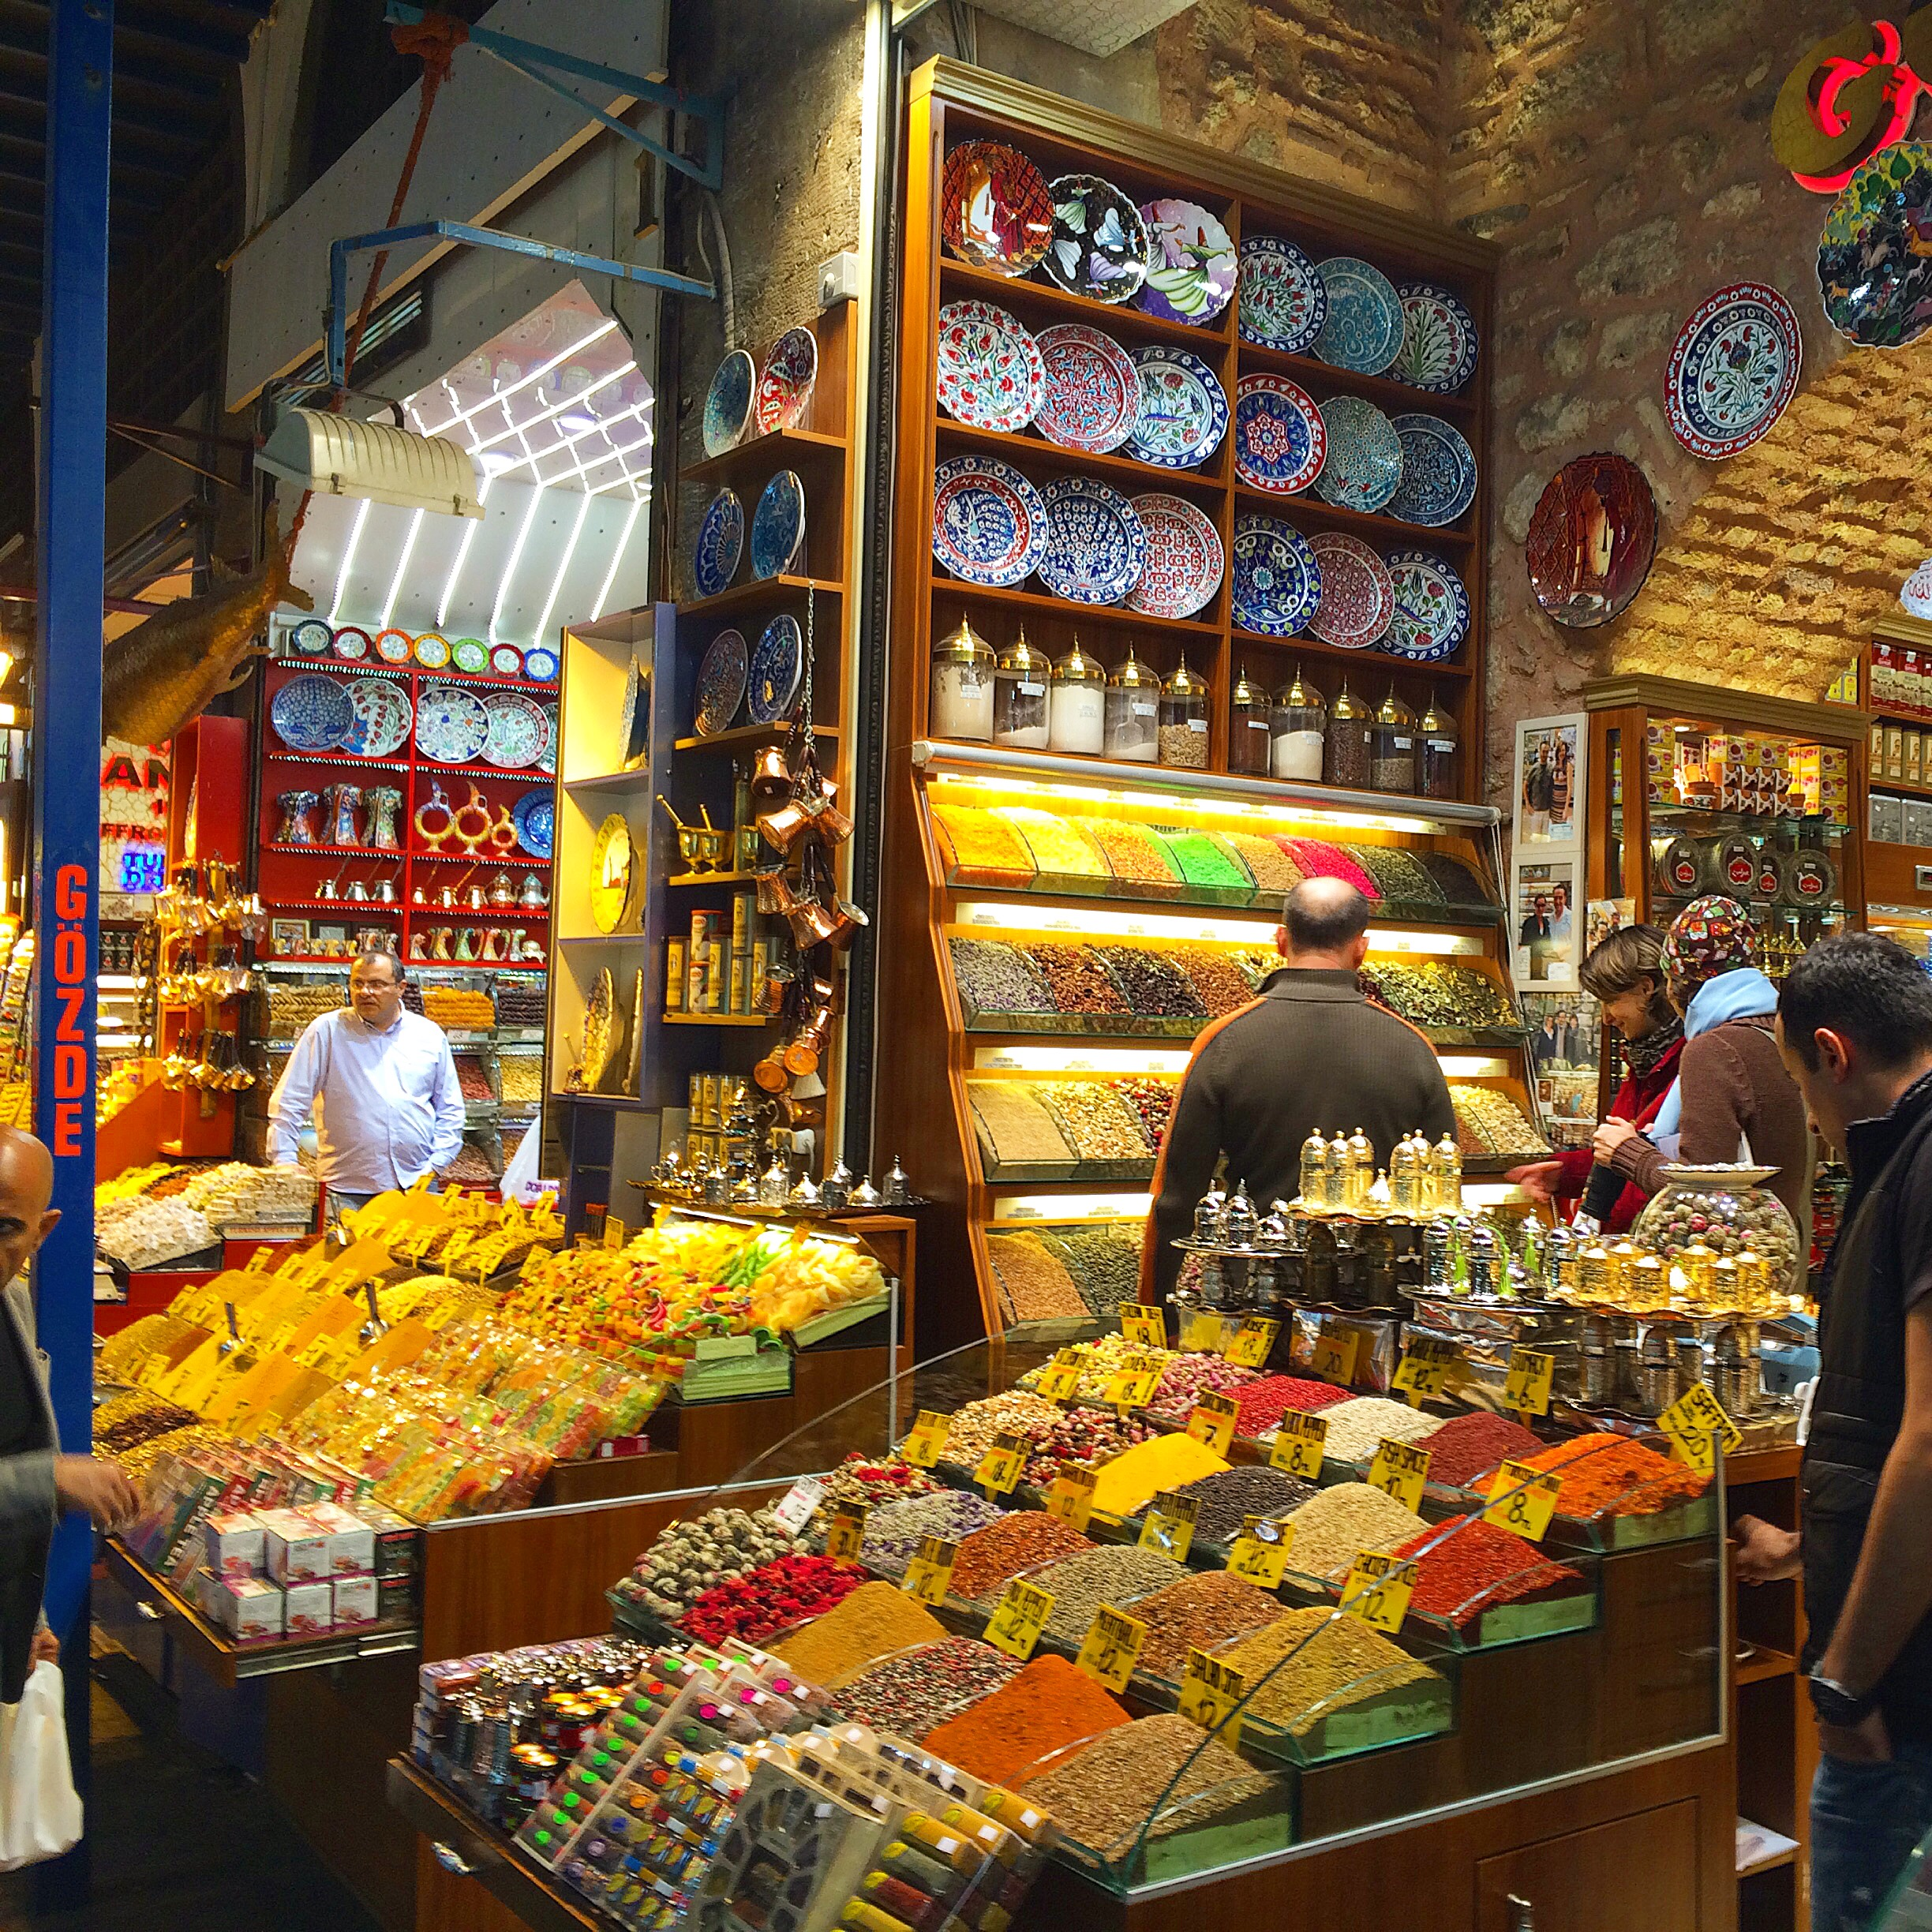 I can almost smell the aromas just by looking at a picture of the Spice Market.